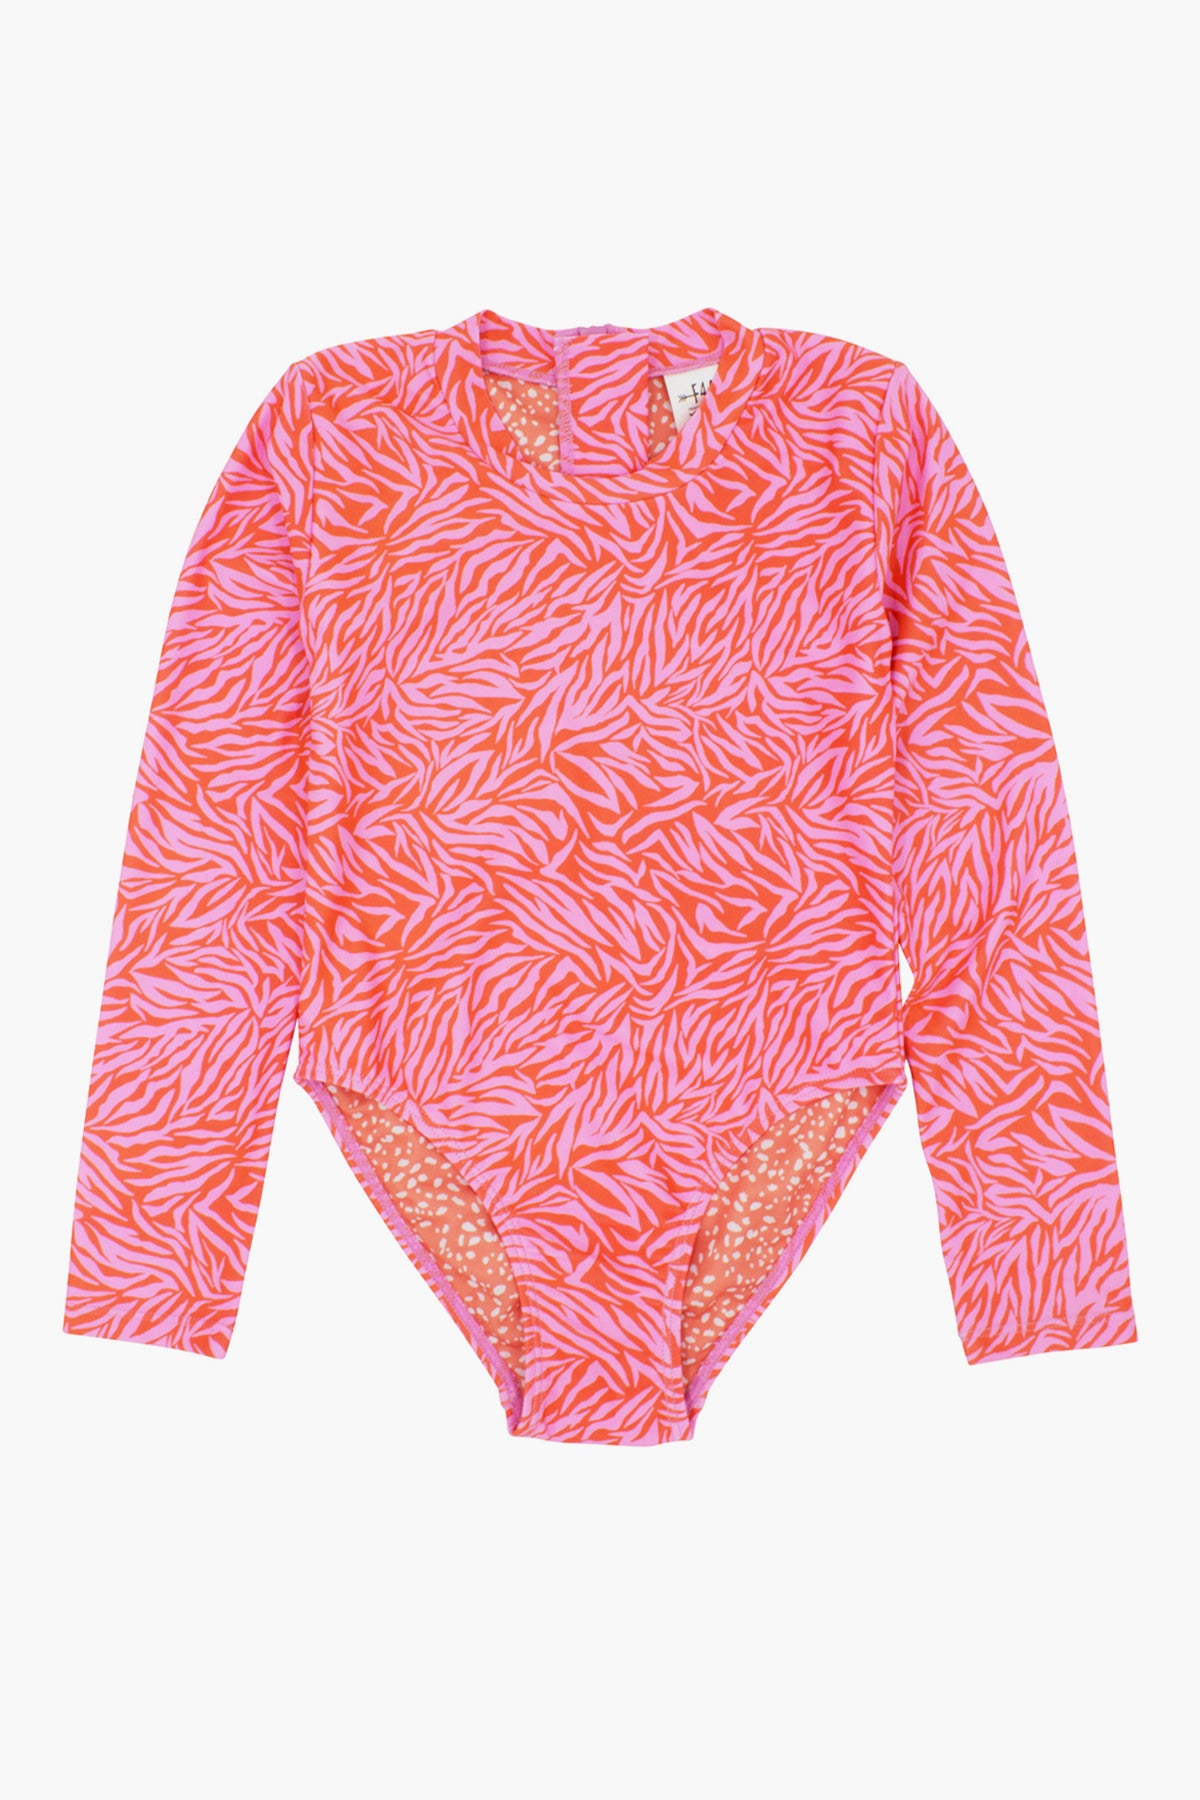 Feather 4 Arrow Wave Chaser Girls Surf Suit - Coral Crush